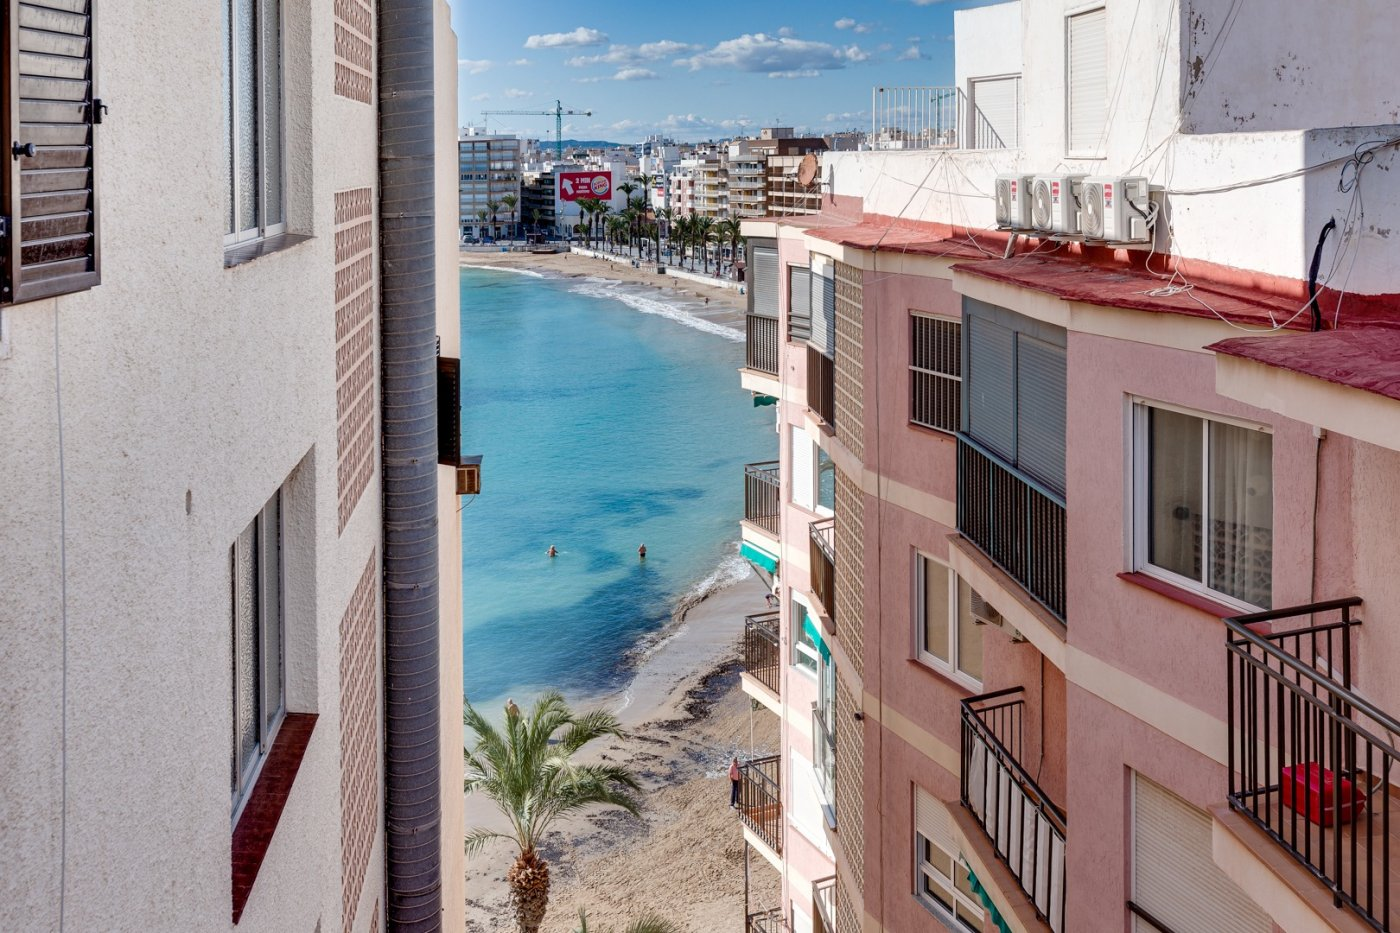 2 Bedrooms Apartment For Sale with Sea Views Near El Cura Beach